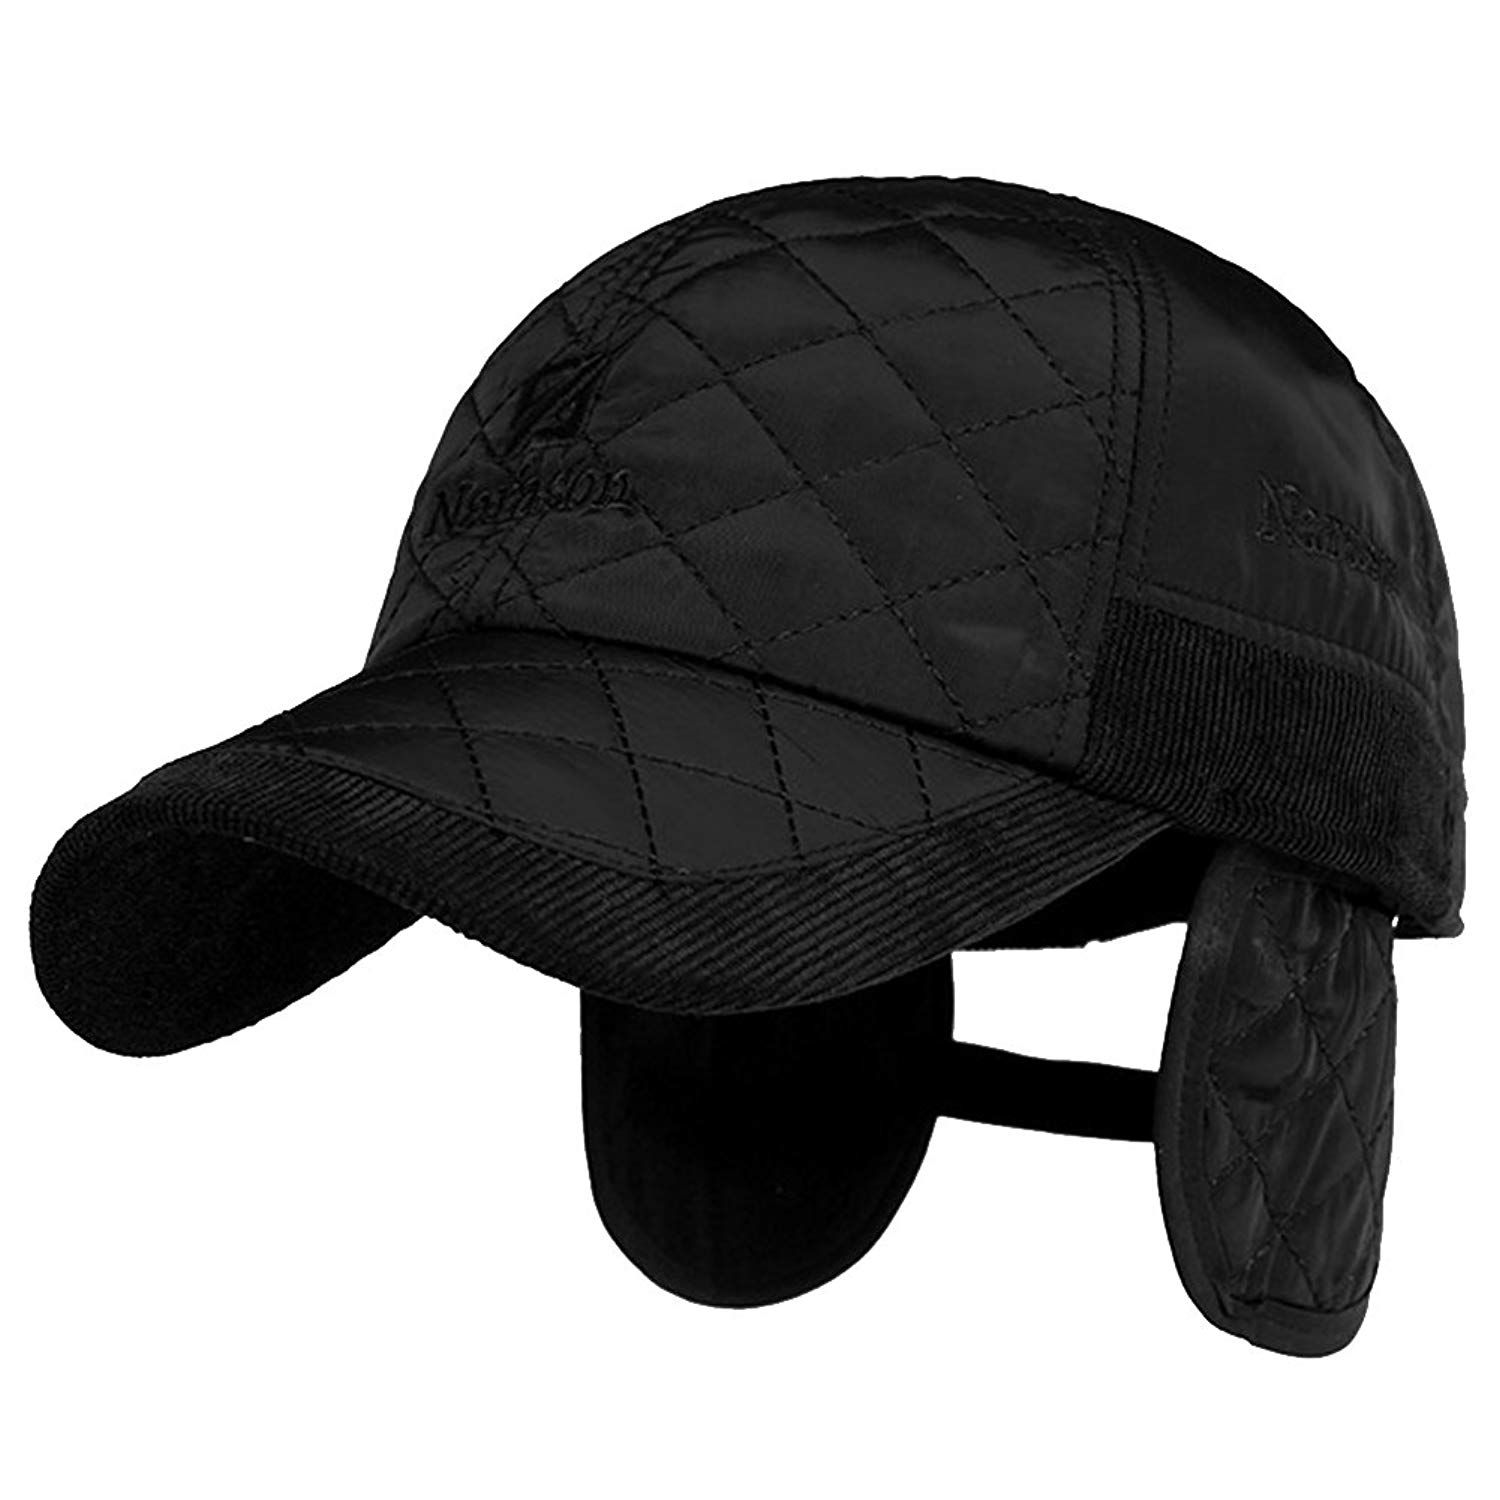 Men's Winter Cotton Padded Fleece Lining Quilting Plaid Peaked Hat Cap Earmuffs